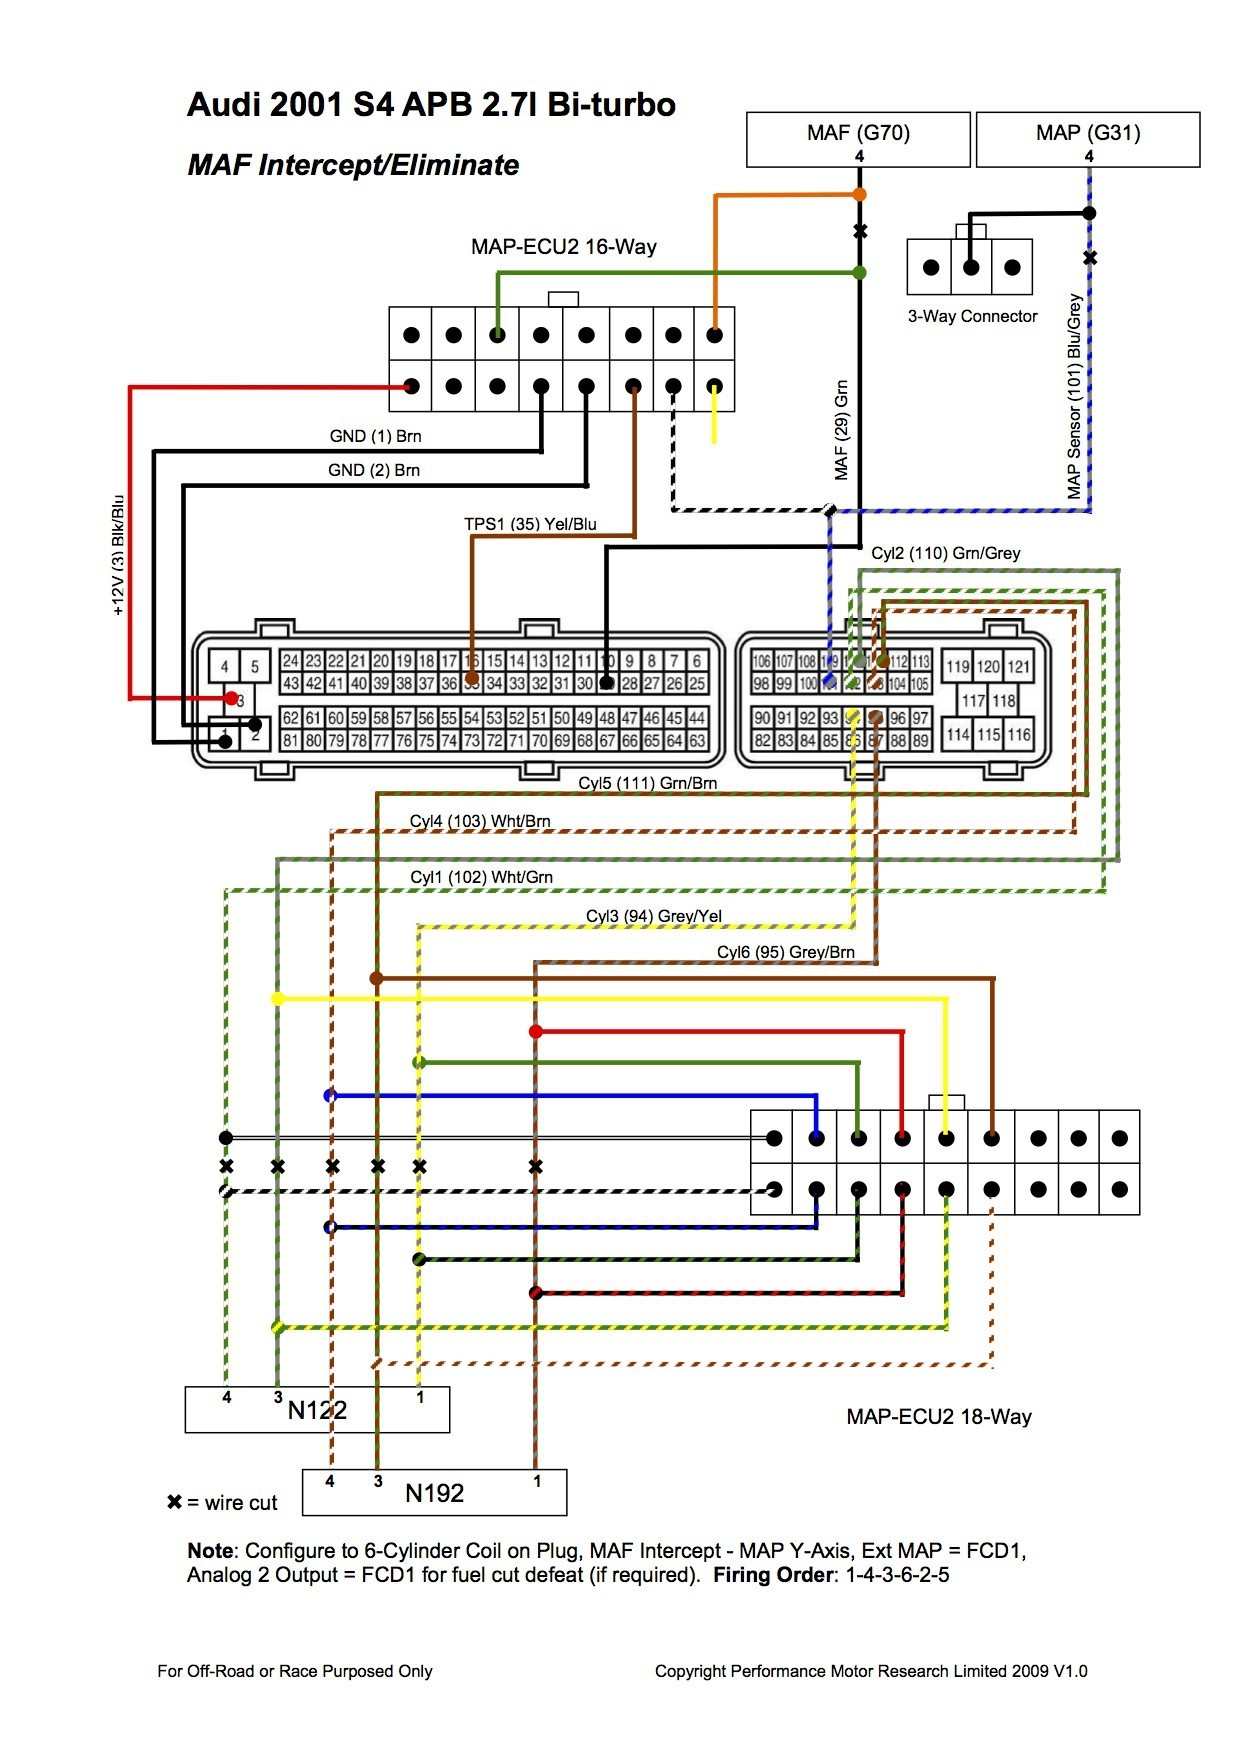 Kenwood Kdc 108 Wiring Diagram 30 Kenwood Kdc 108 Wiring Diagram Worksheet Cloud Of Kenwood Kdc 108 Wiring Diagram Kenwood Kdc 108 Wiring Harness Diagram Wiring Diagram and Schematic